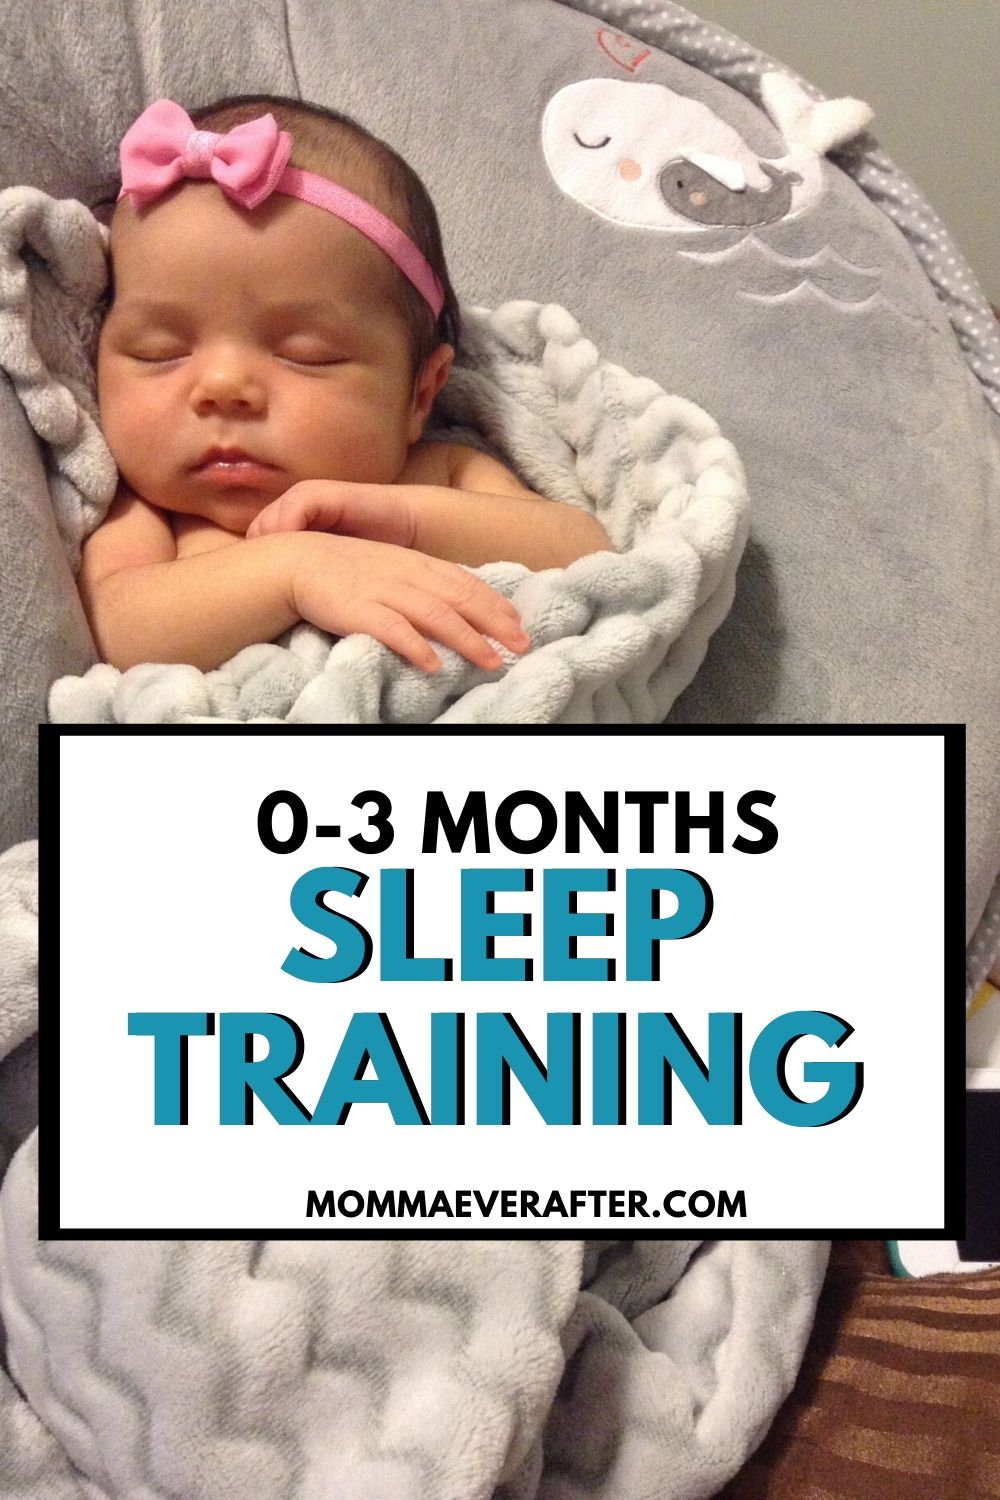 sleep training 0-3 months